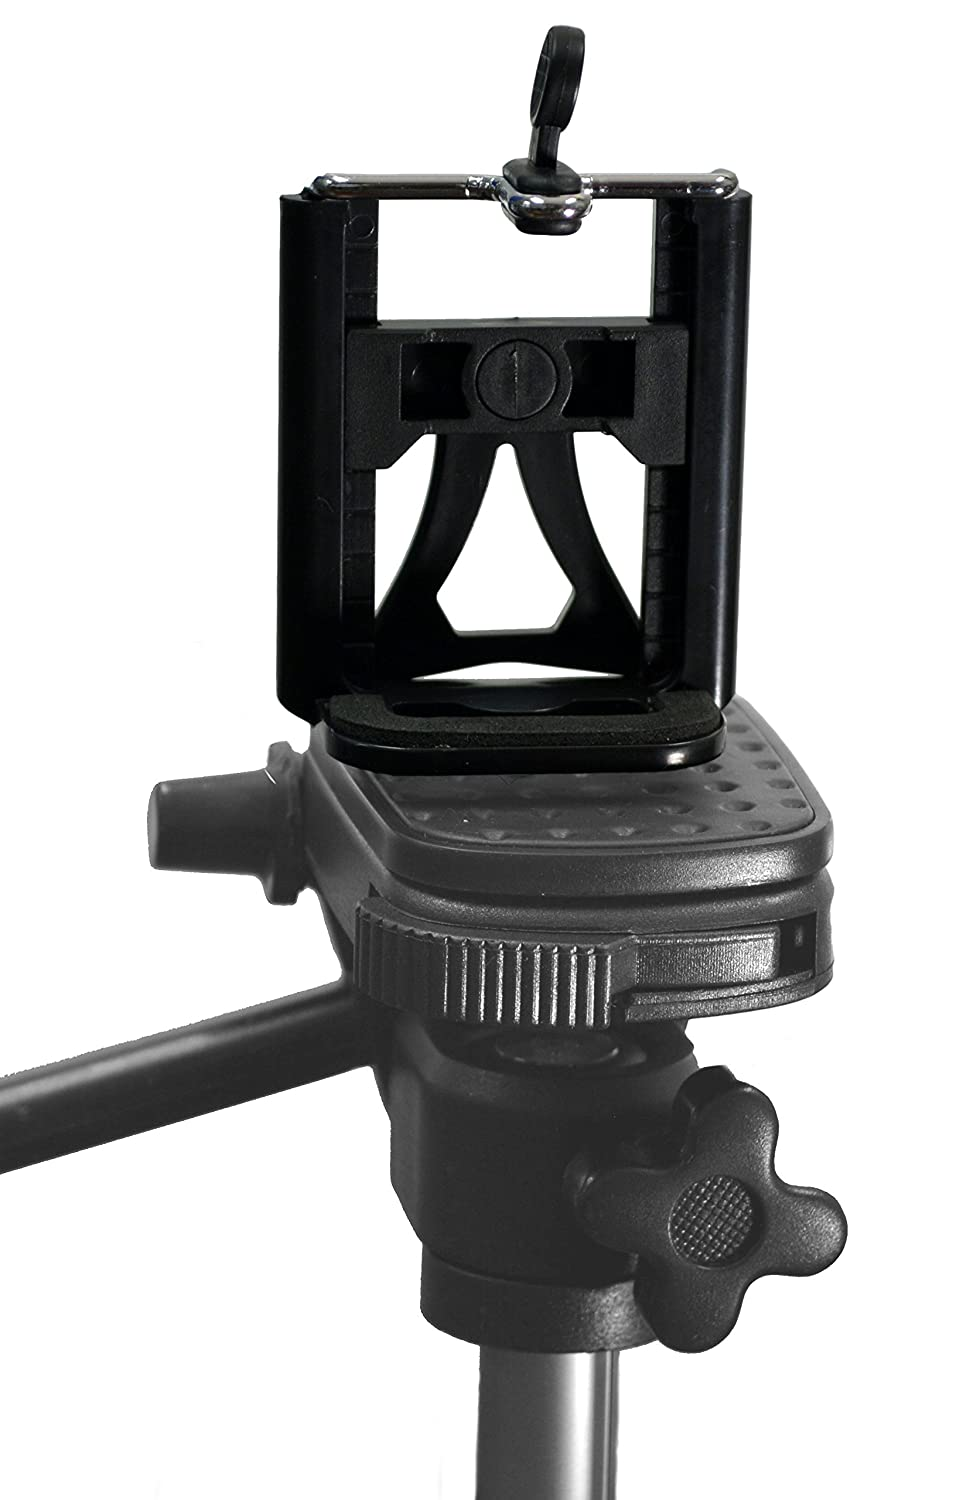 Cell Phone Tripod Adapter Mount and Desk Stand Holder for ...